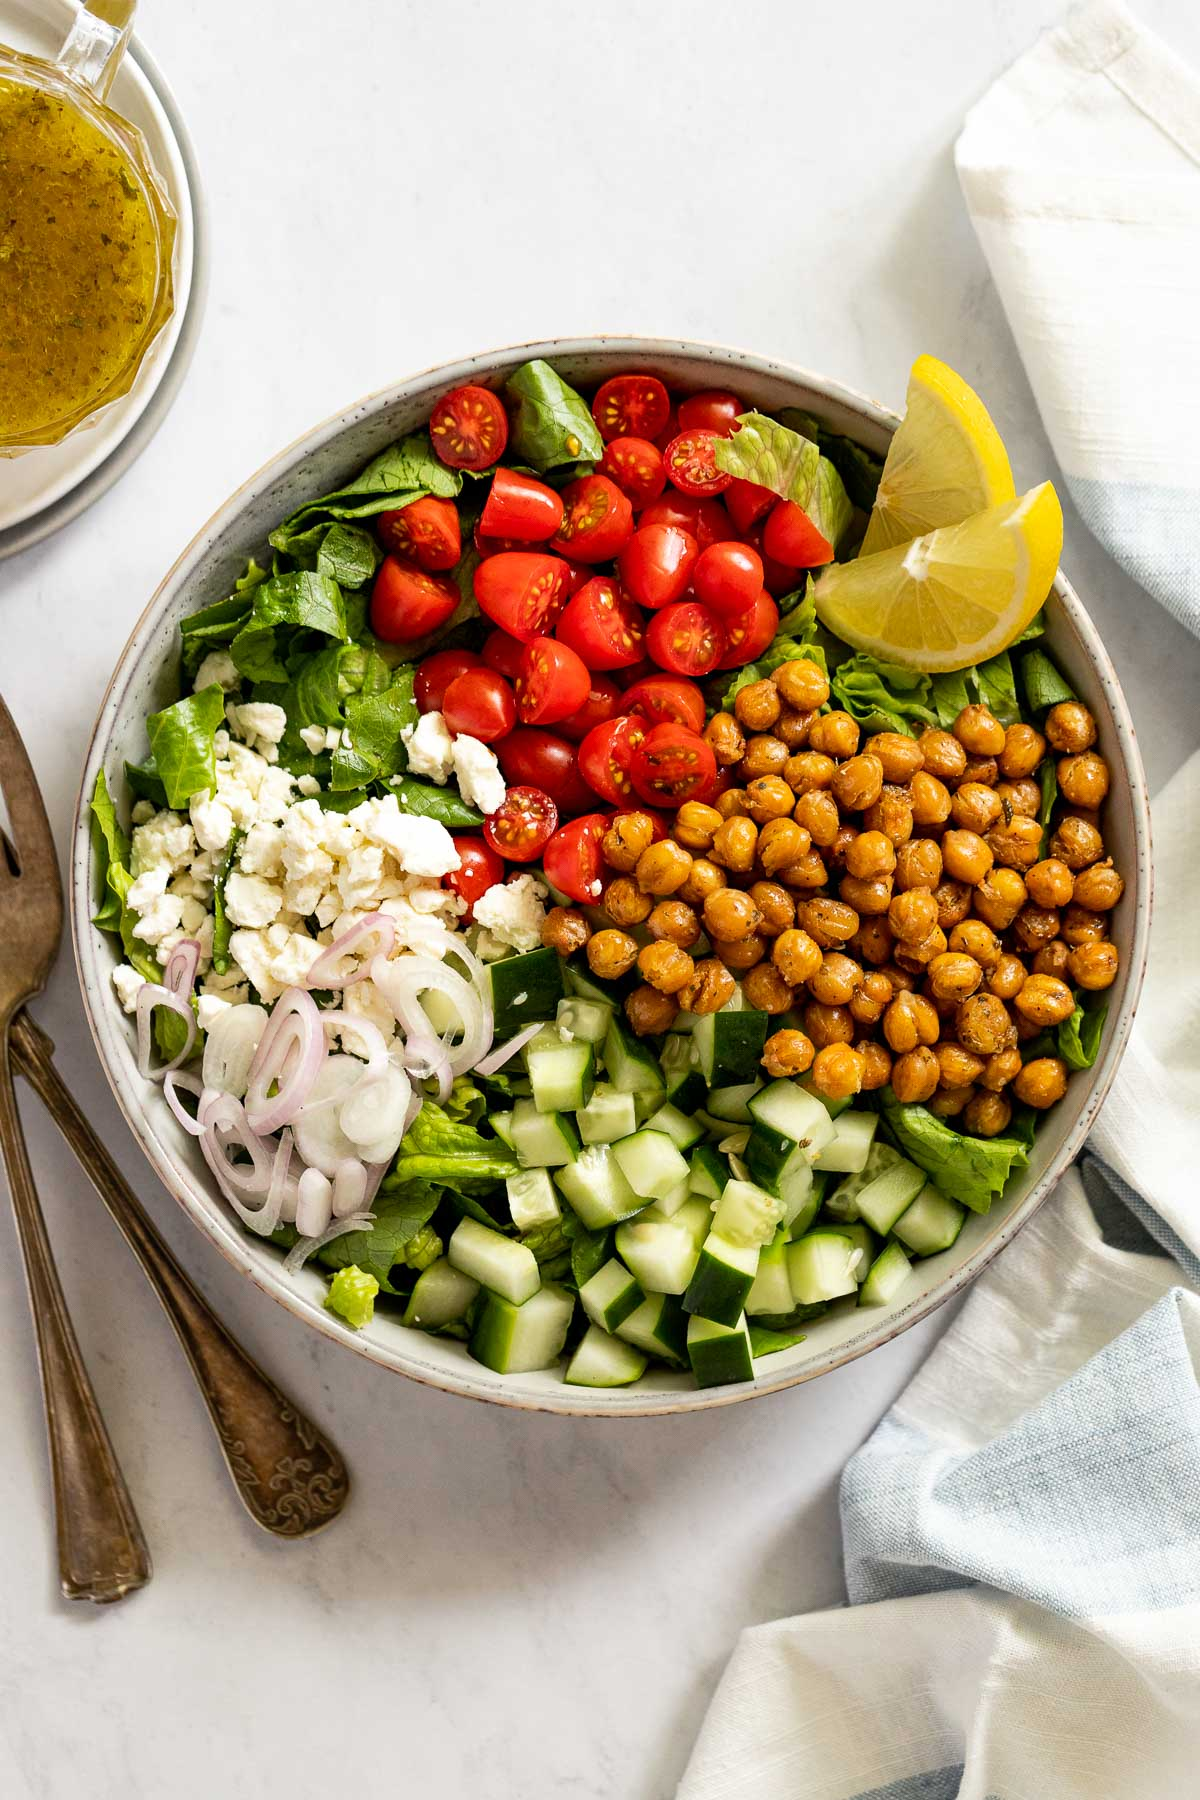 Shallot, feta, tomatoes, chickpeas, and cucumber on bed of lettuce in a bowl.